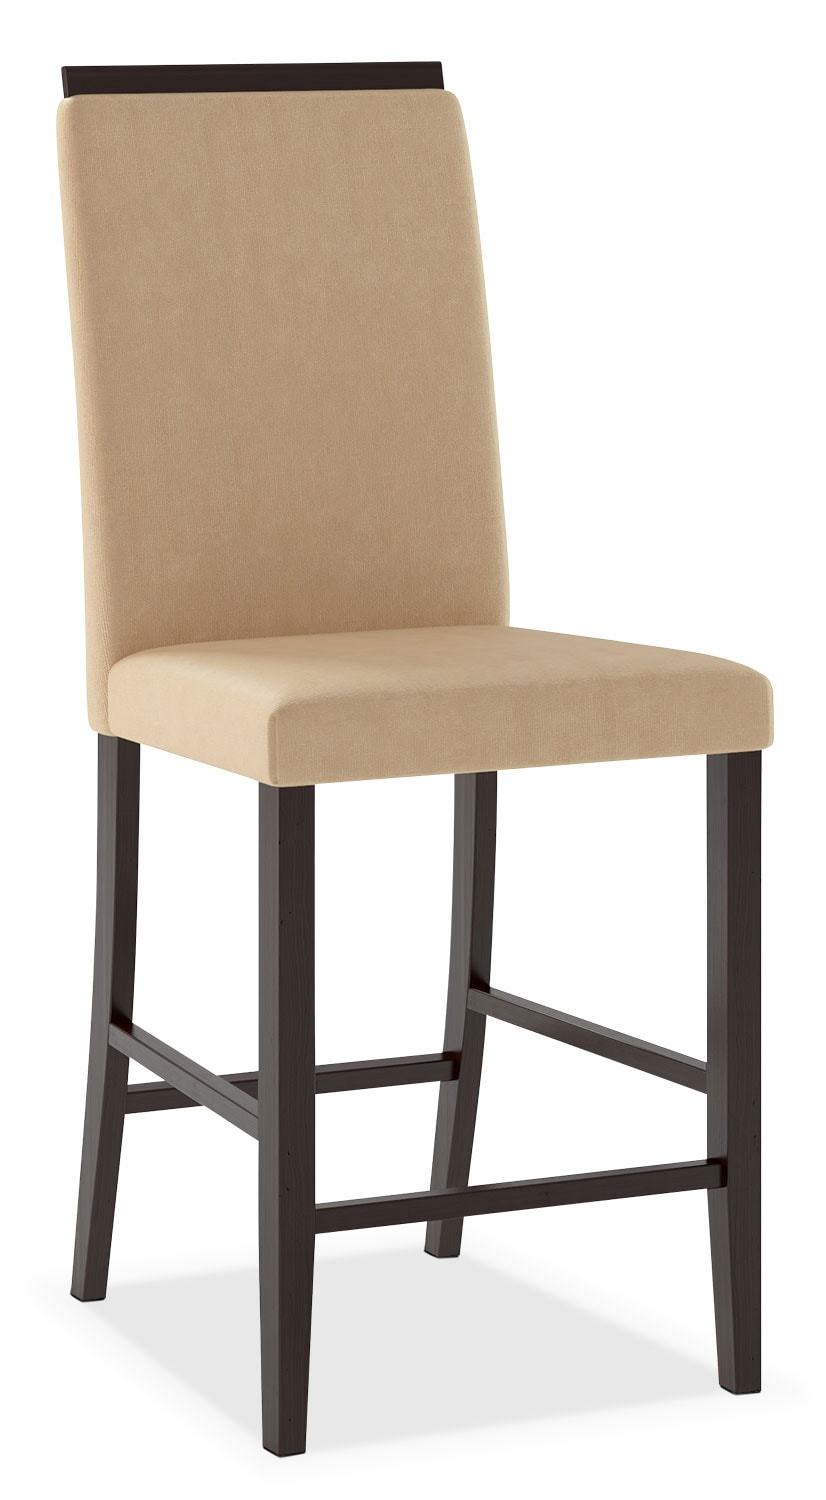 Bistro Counter-Height Dining Chair with Capped Backrest – Desert Sand